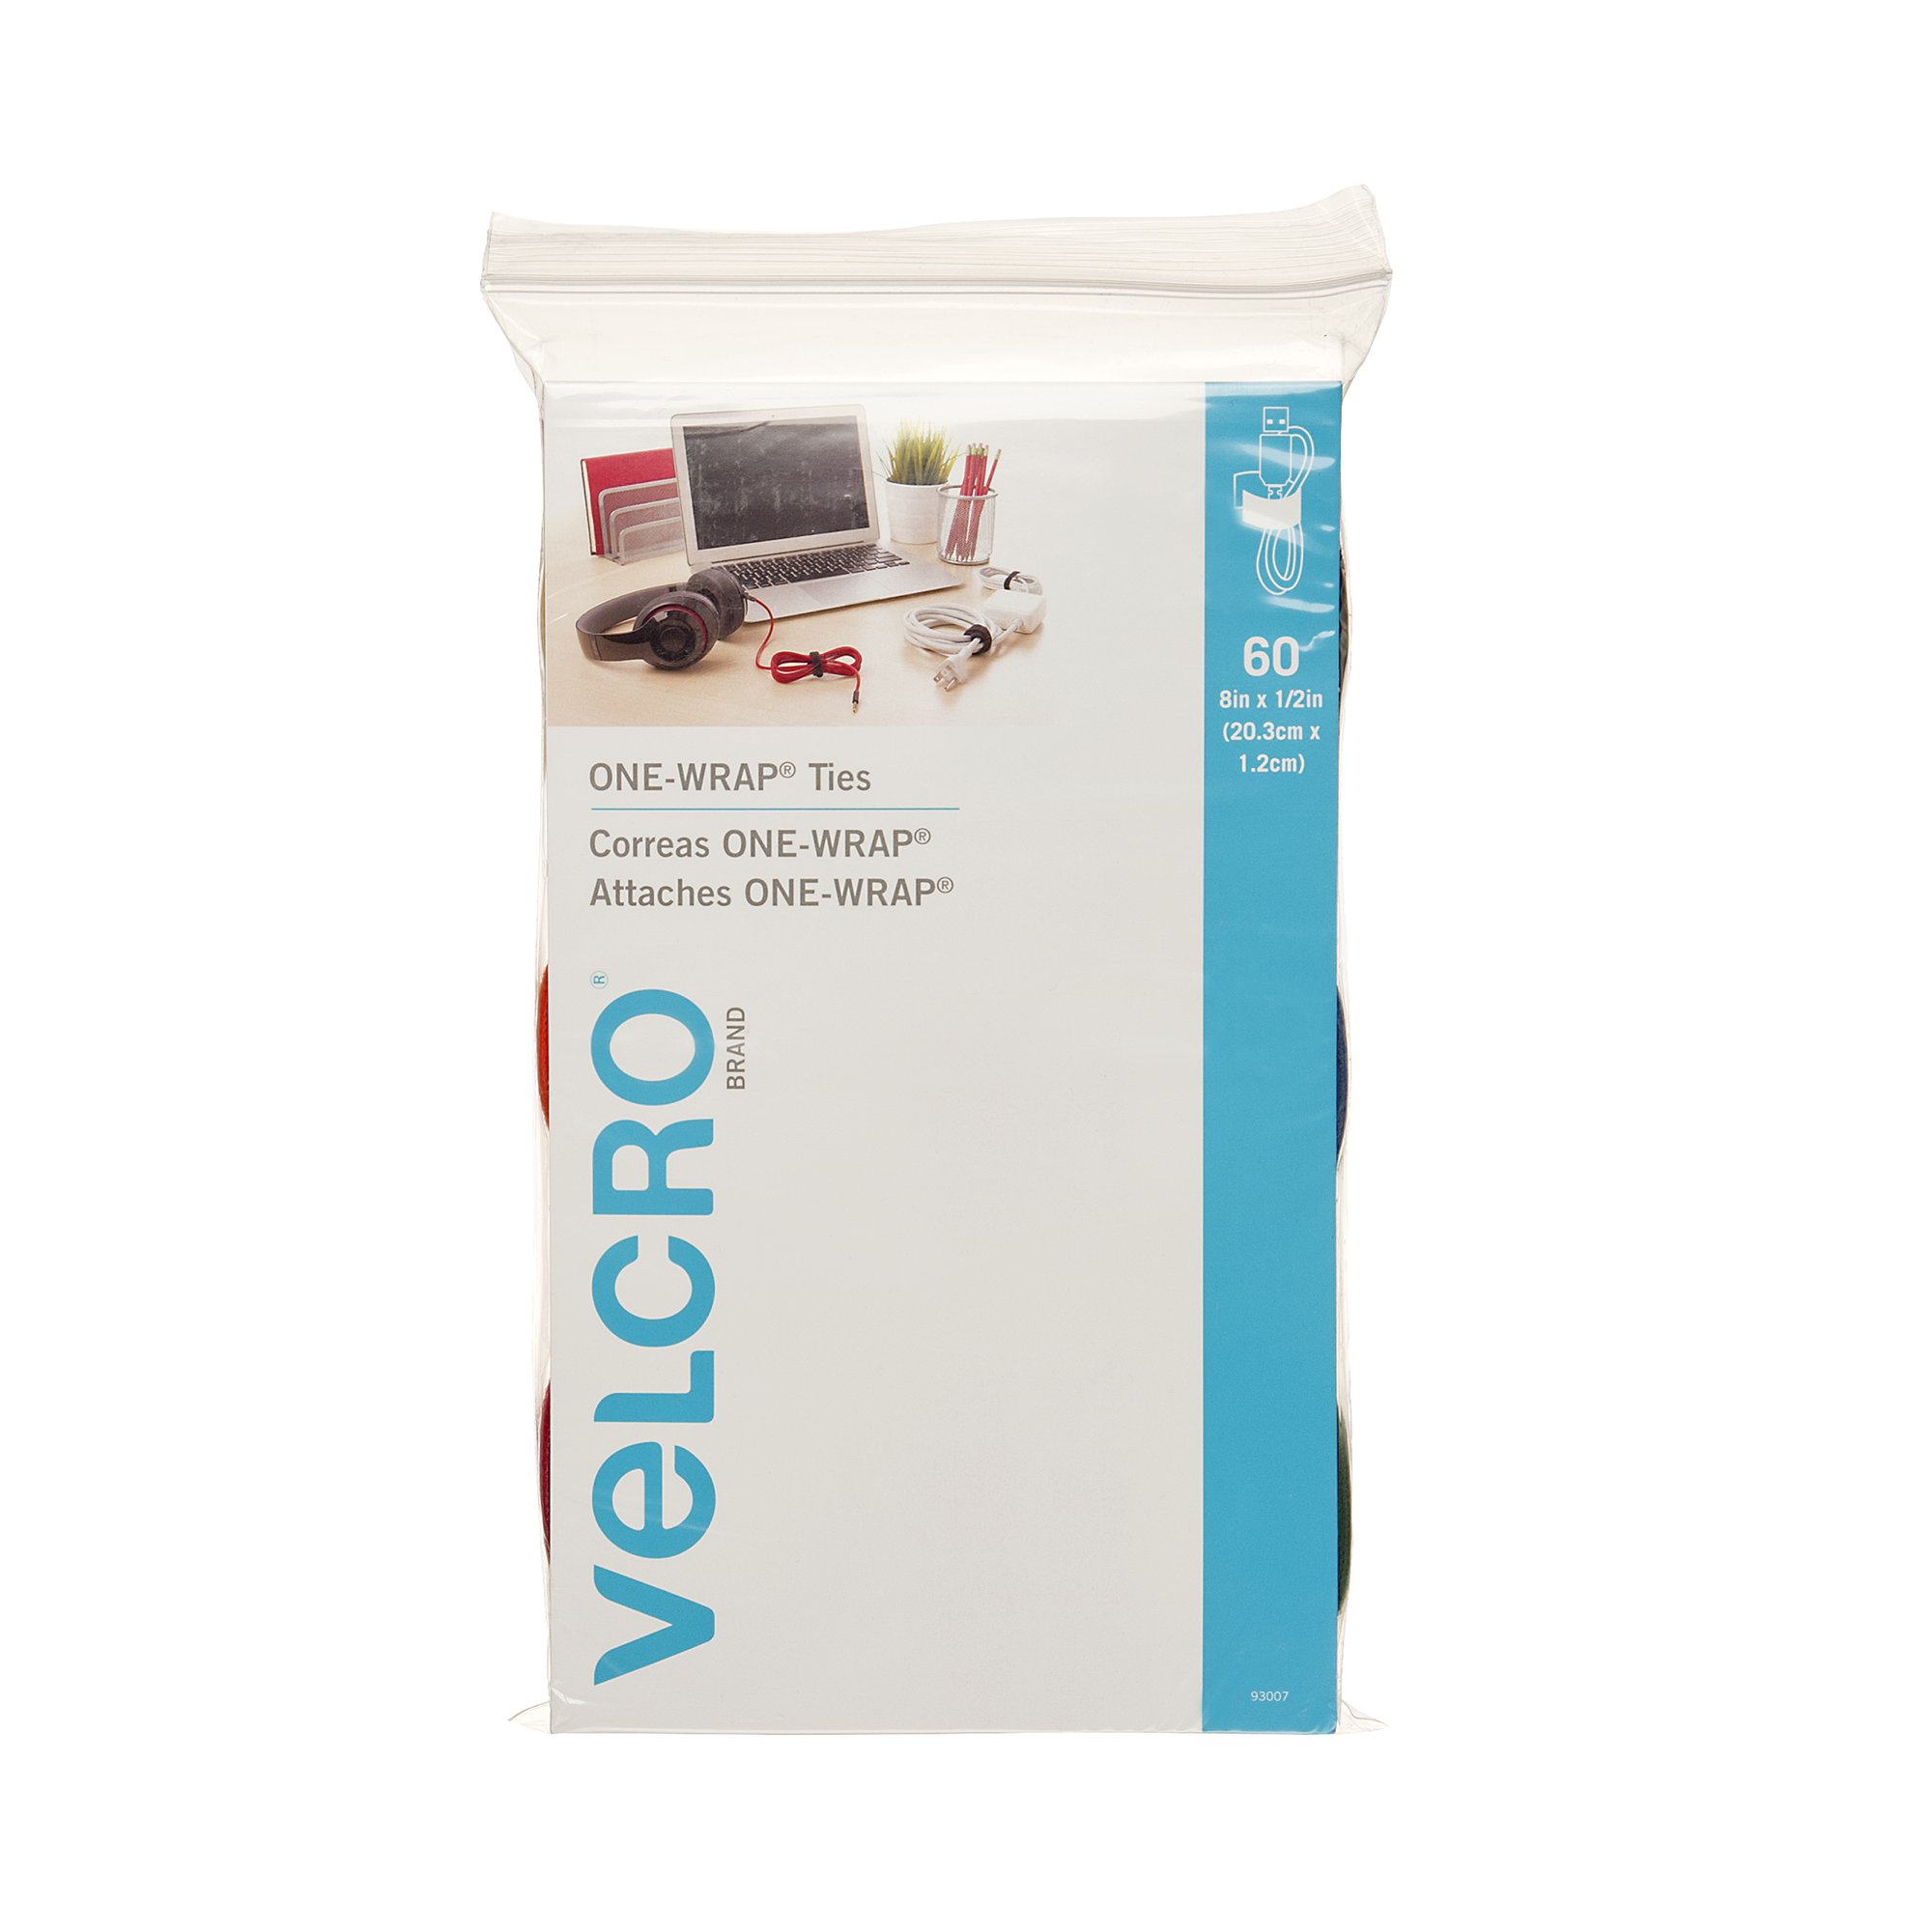 VELCRO Brand ONE-WRAP Ties | Cable Management, Wires & Cords | Self Gripping Cable Ties, Reusable | 60 Ct -  8'' x 1/2'' | Multi-color